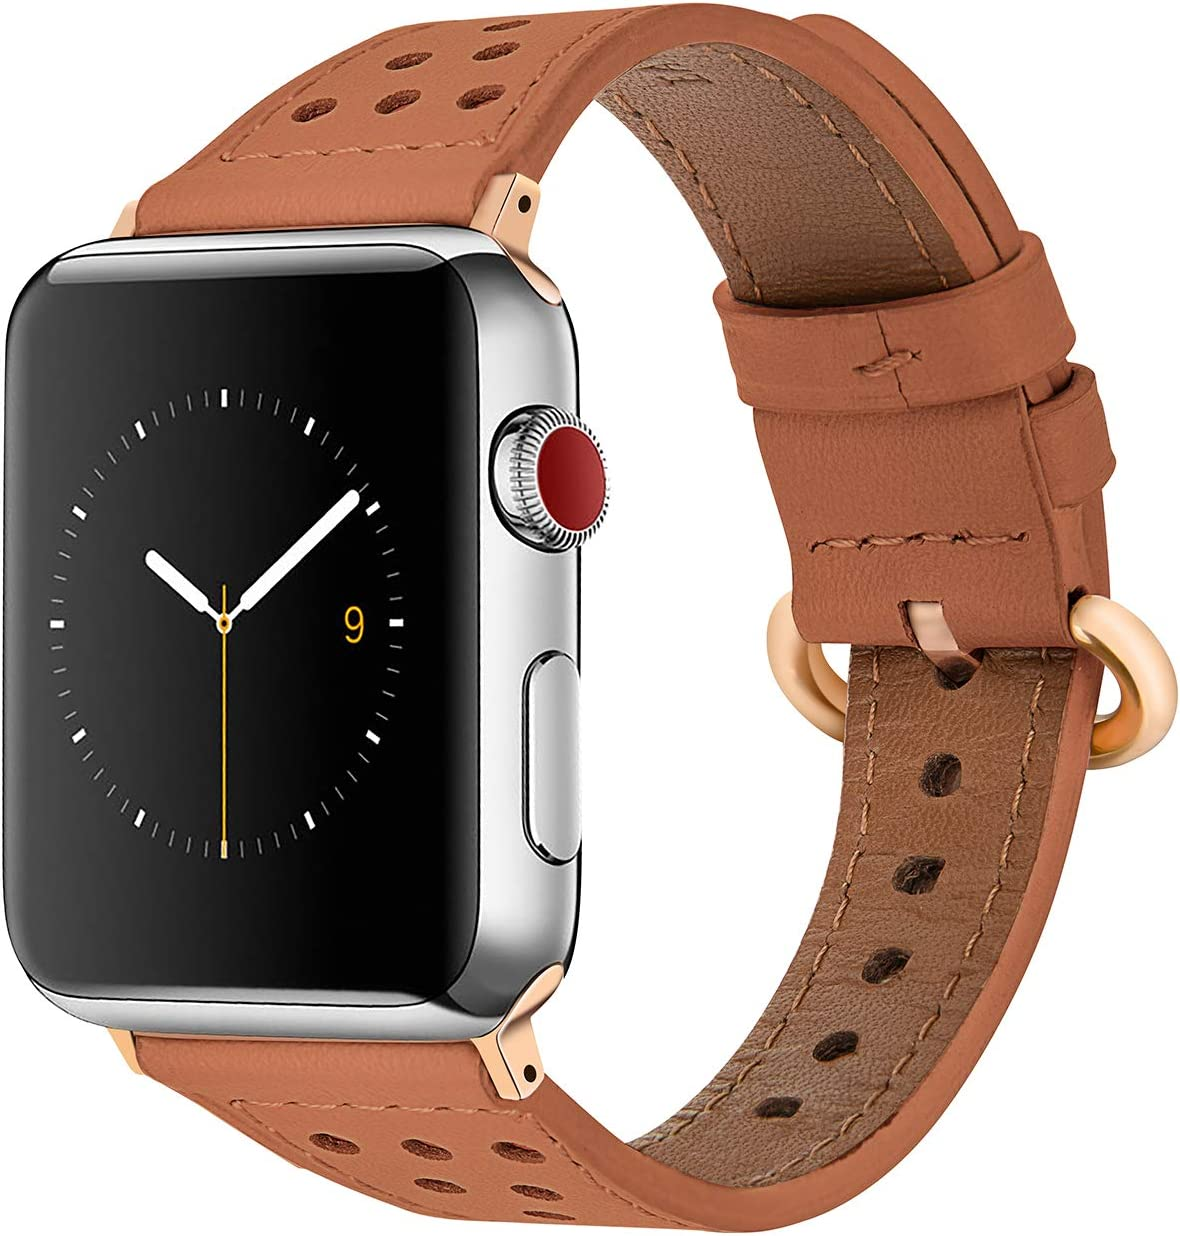 EAVAE Compatible with Apple Watch Bands 40mm 38mm, Premium Brown Leather Bands for Apple Watch Series 5 Series 4 Series 3 Series 2 Series 1 Women